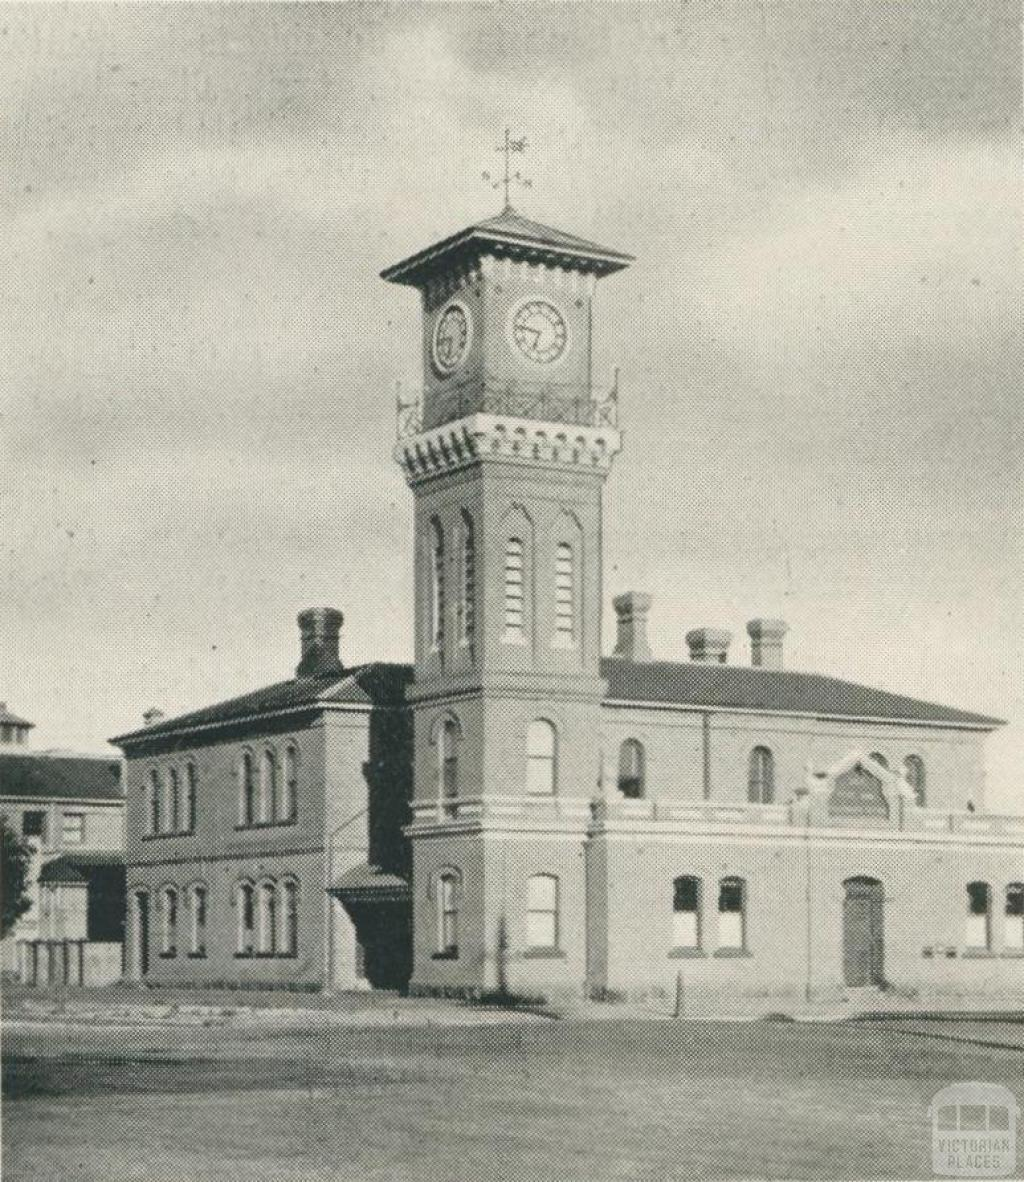 Sale Post Office, 1938